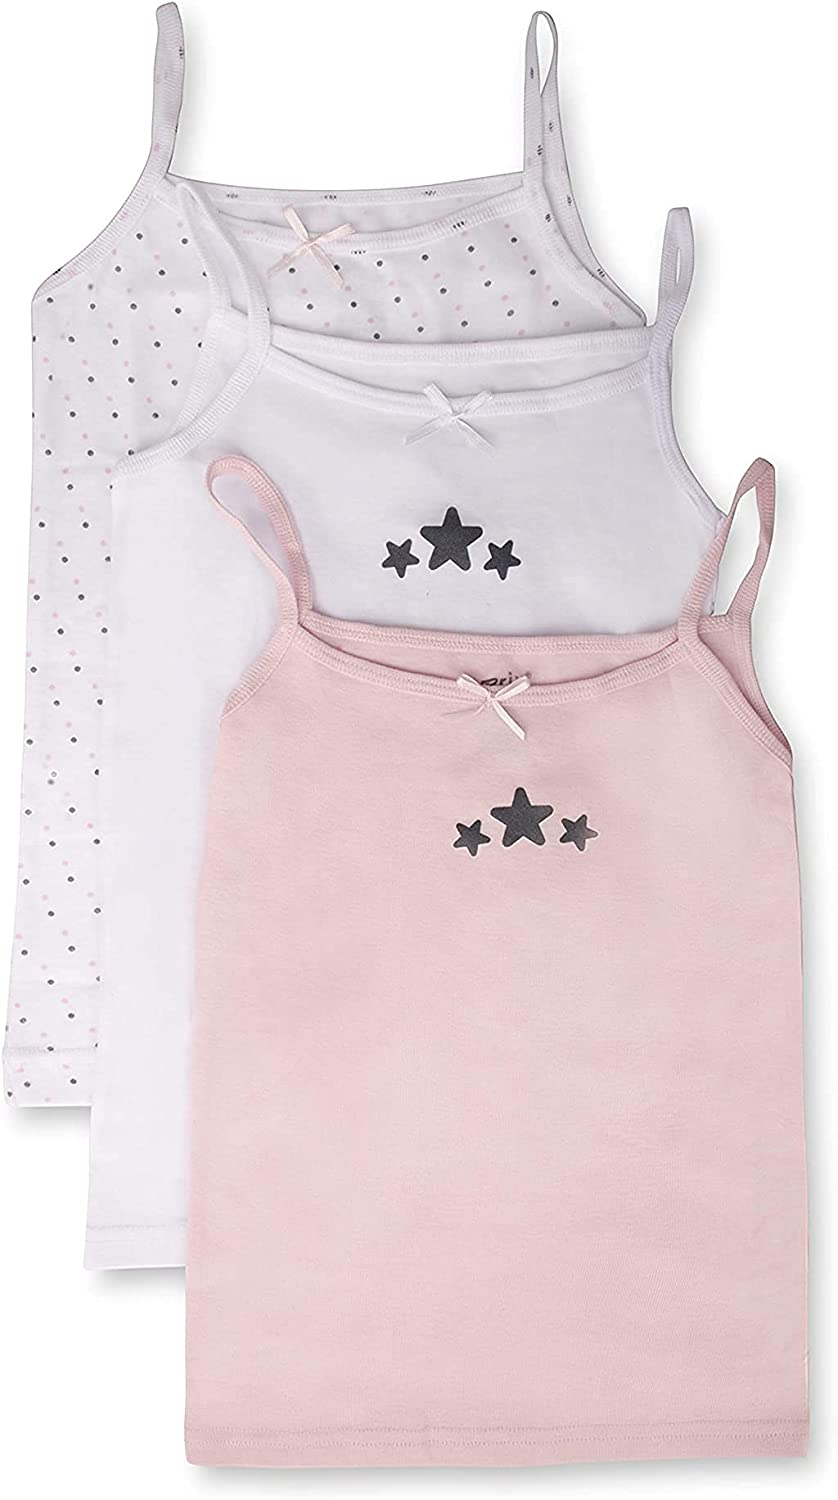 Brix Toddler and Girls' Cami – Undershirts – 3 pk Tagless Cotton Camisole.